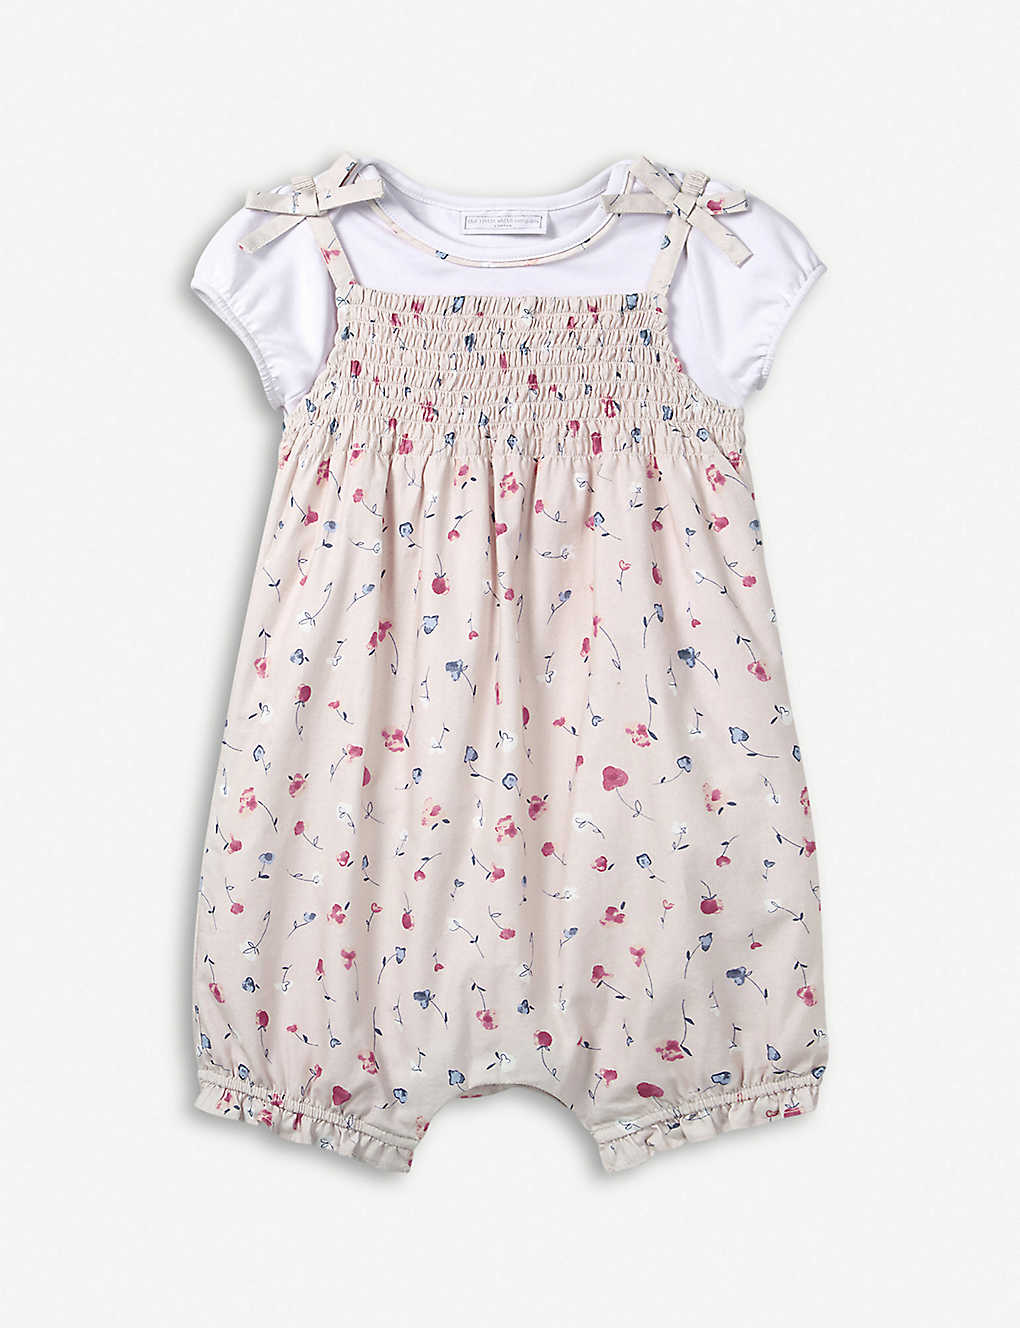 af91a6110cd15 THE LITTLE WHITE COMPANY - Floral-print cotton T-shirt and romper ...